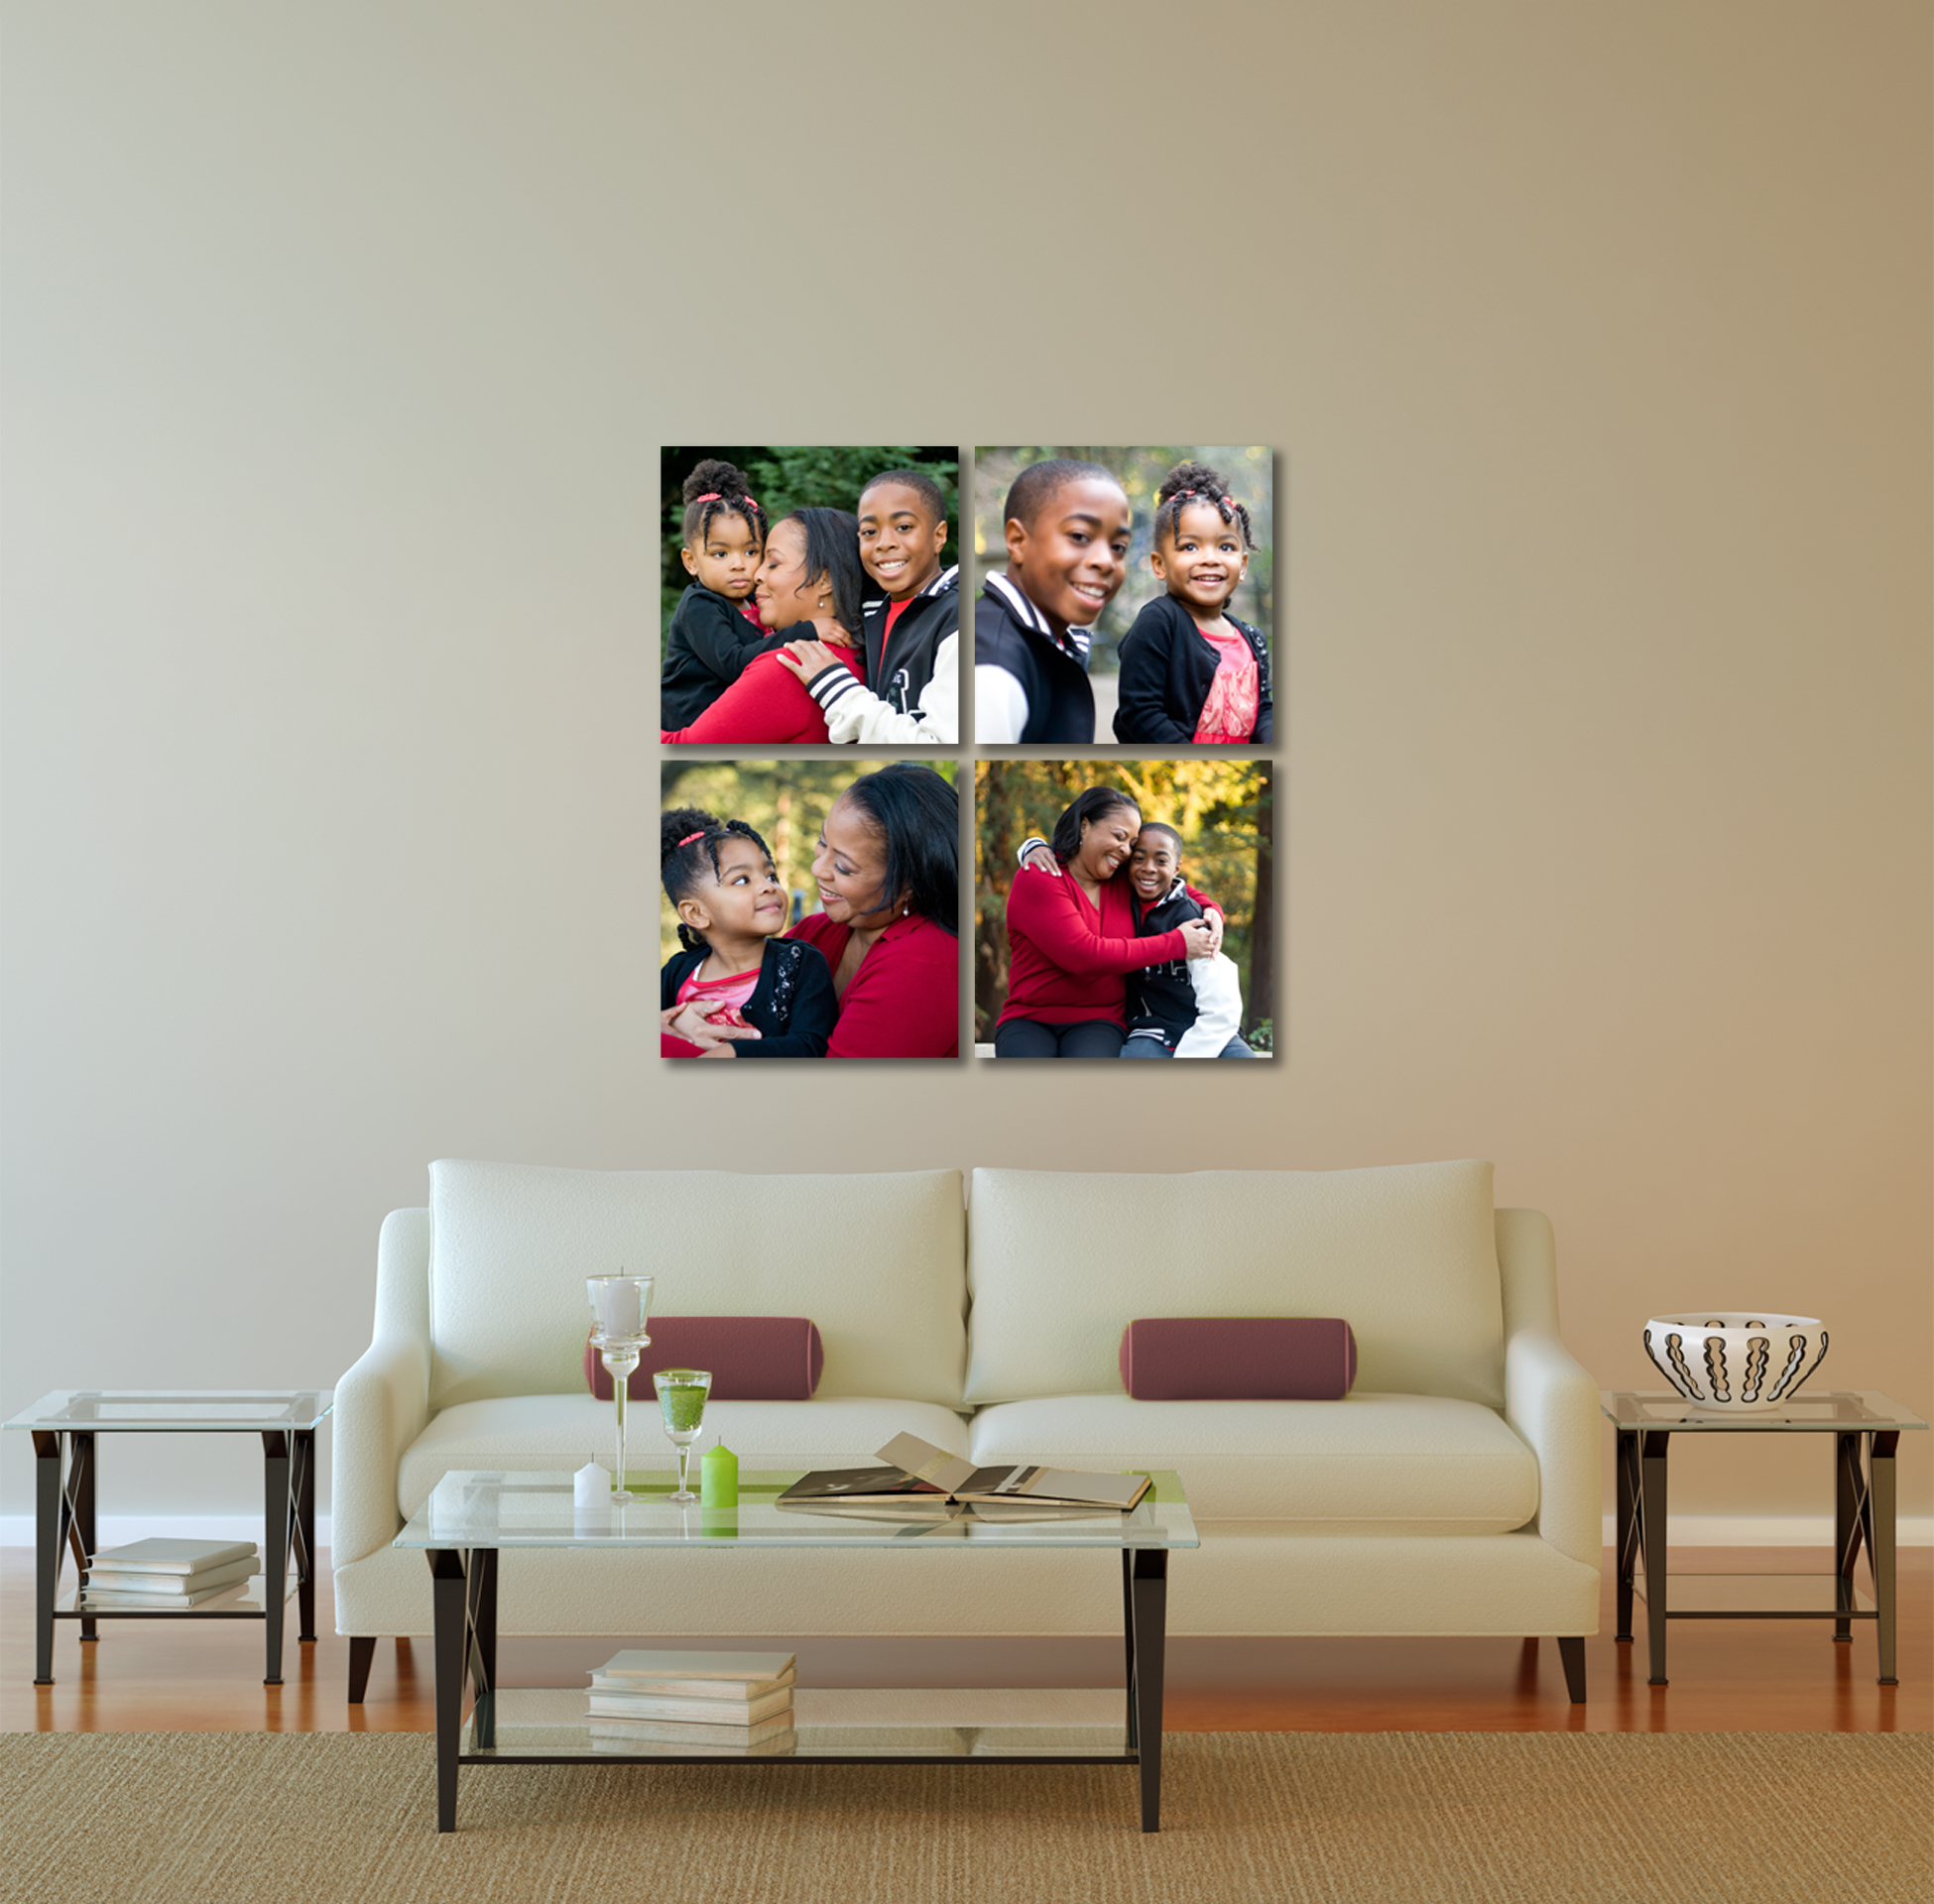 Captivating Wall Canvas For Living Room Yes Go